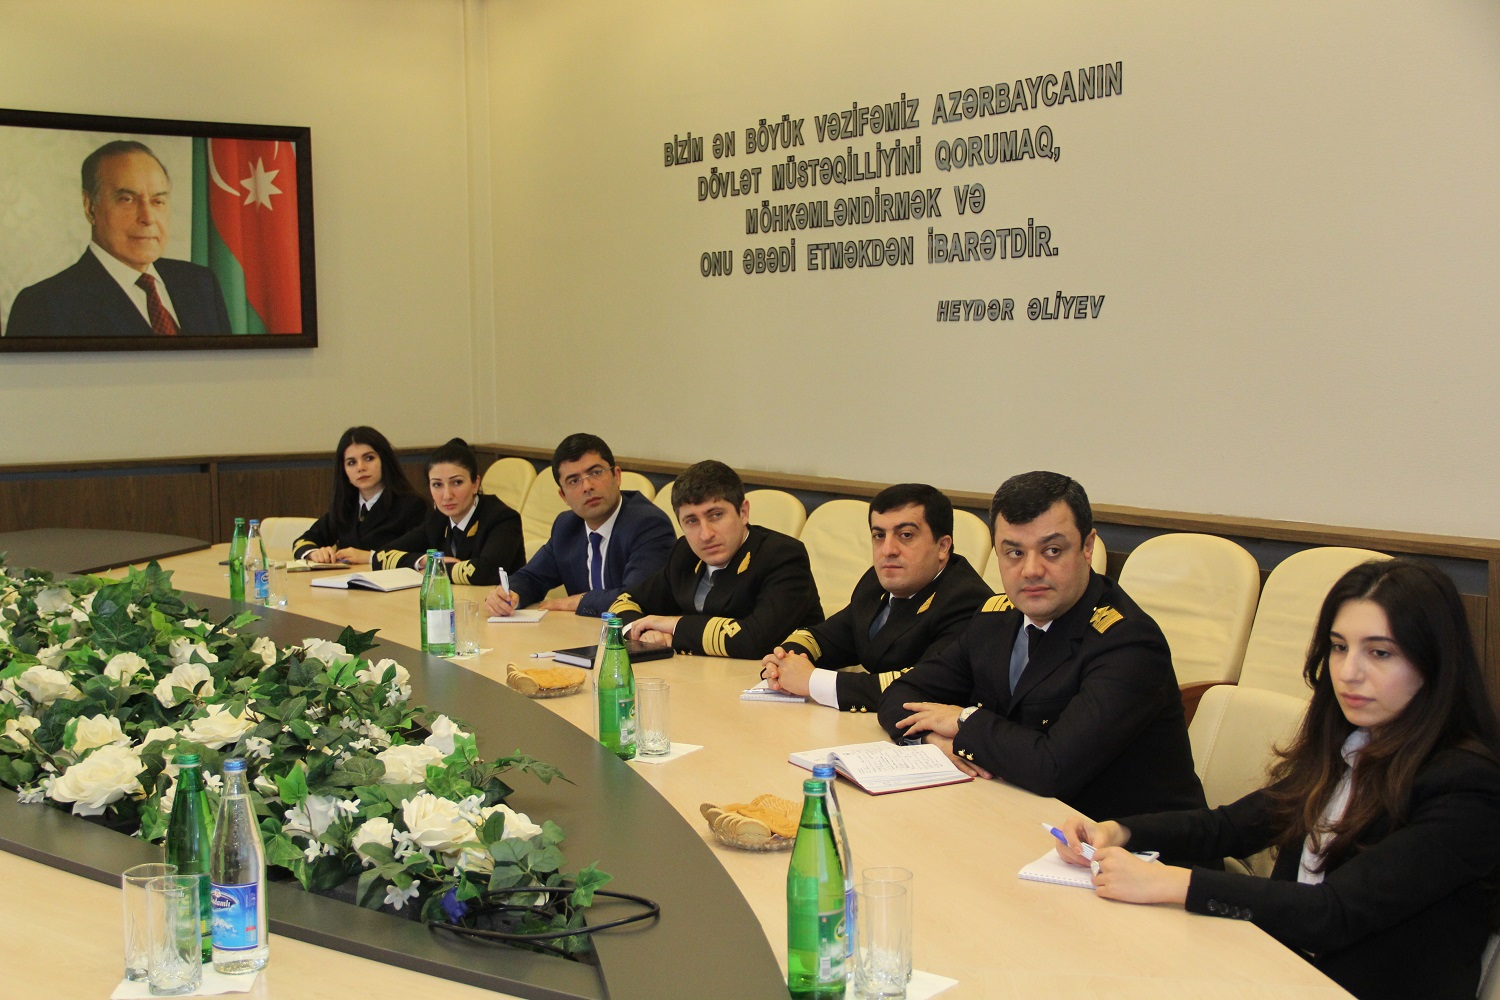 In the State Maritime Administration of the Republic of Azerbaijan an educational event was held on